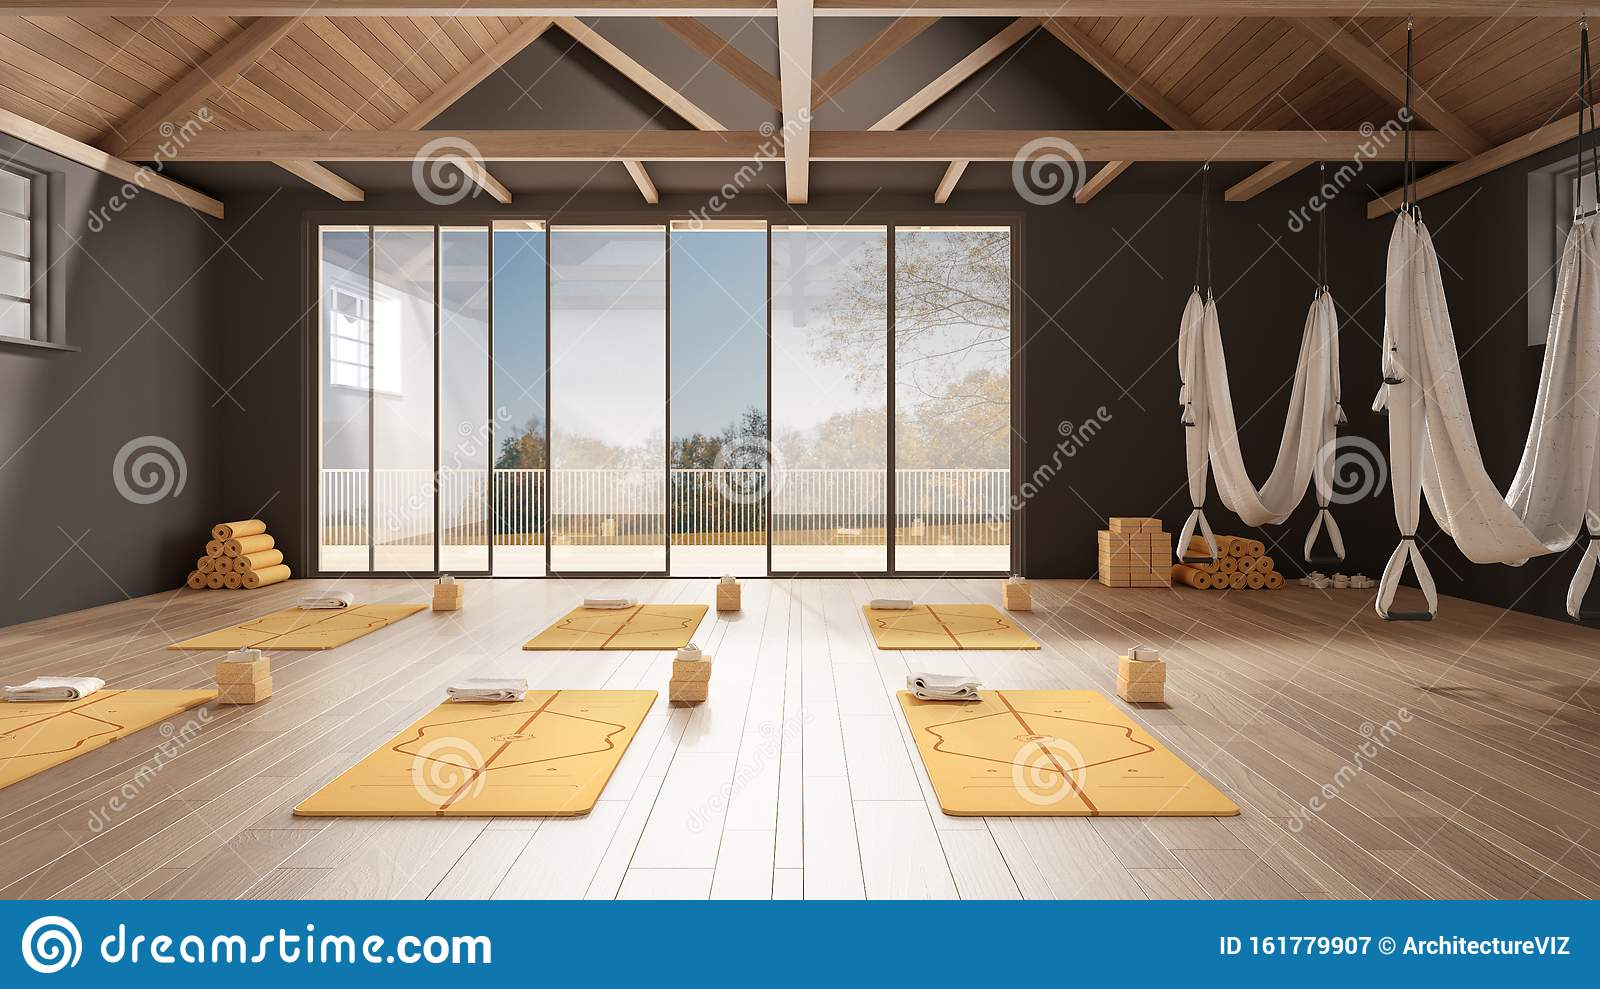 Empty Yoga Studio Interior Design Minimal Open Space With Mats Hammocks And Accessories Wooden Floor And Roof Ready For Yoga Stock Illustration Illustration Of Style Energy 161779907